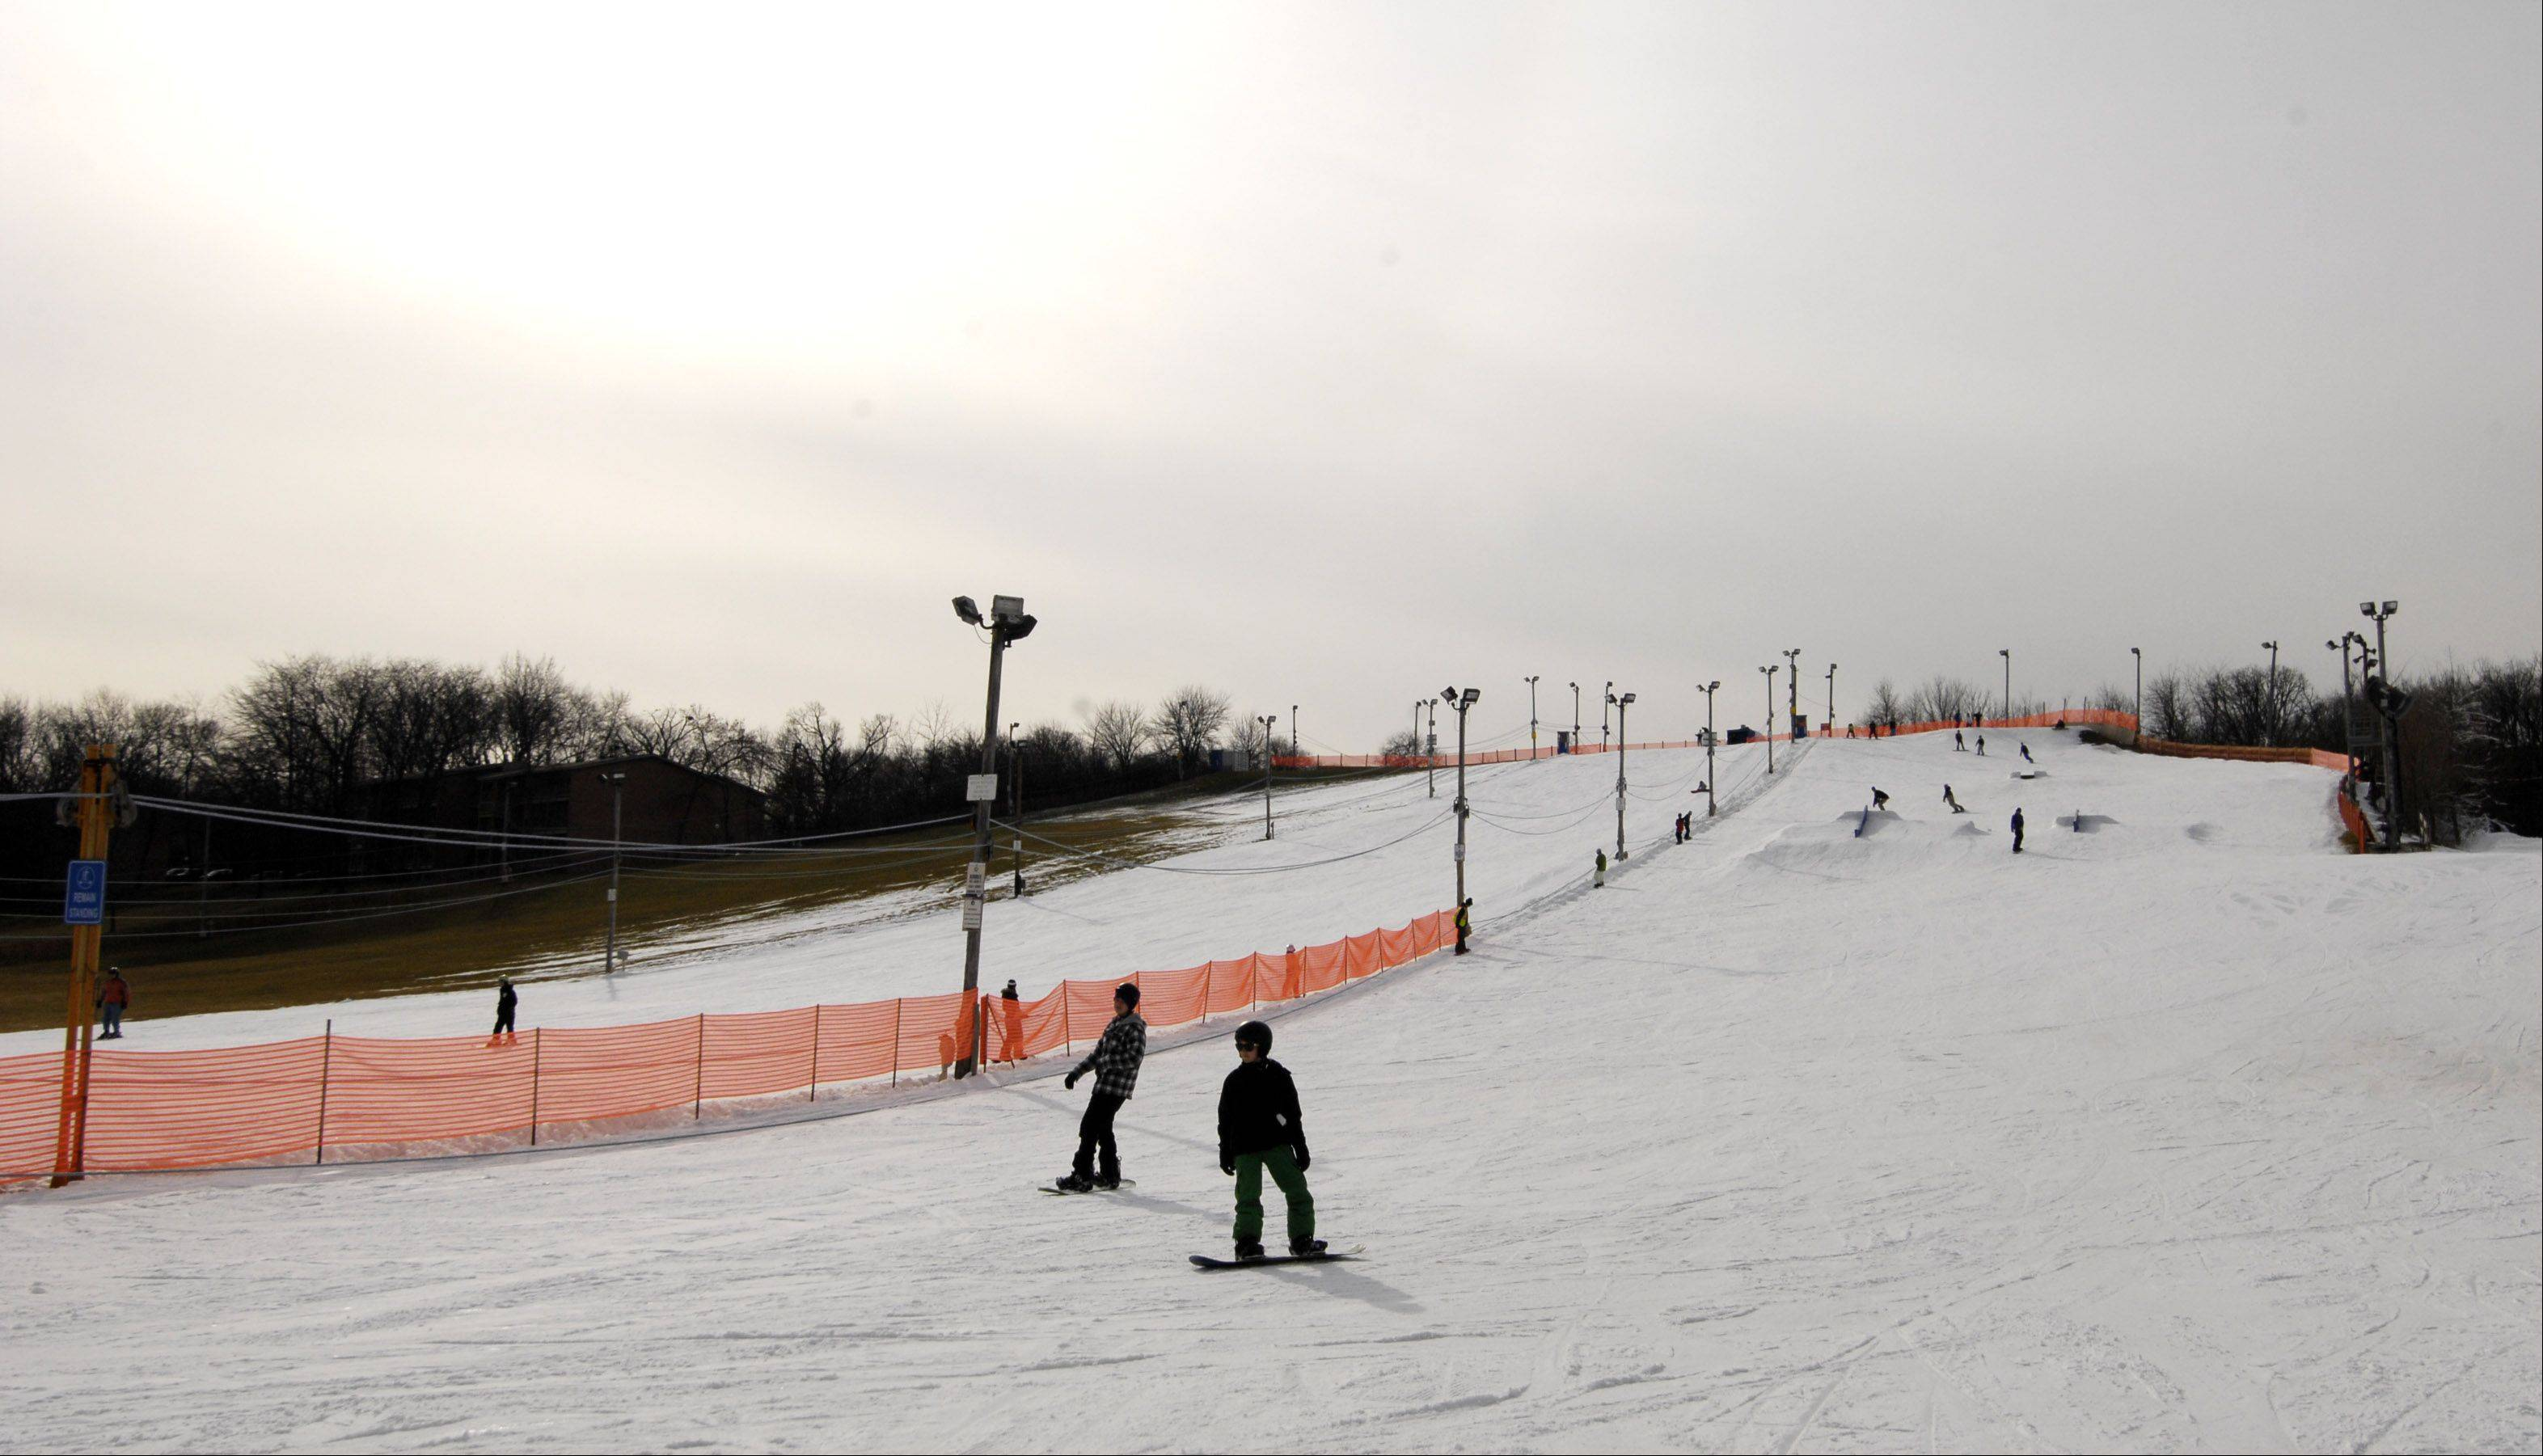 Skiers and snowboarders take to the slopes at Four Lakes Alpine Snowsports in Lisle even with the lack of natural snow. But they're encountering fewer people on the slopes.